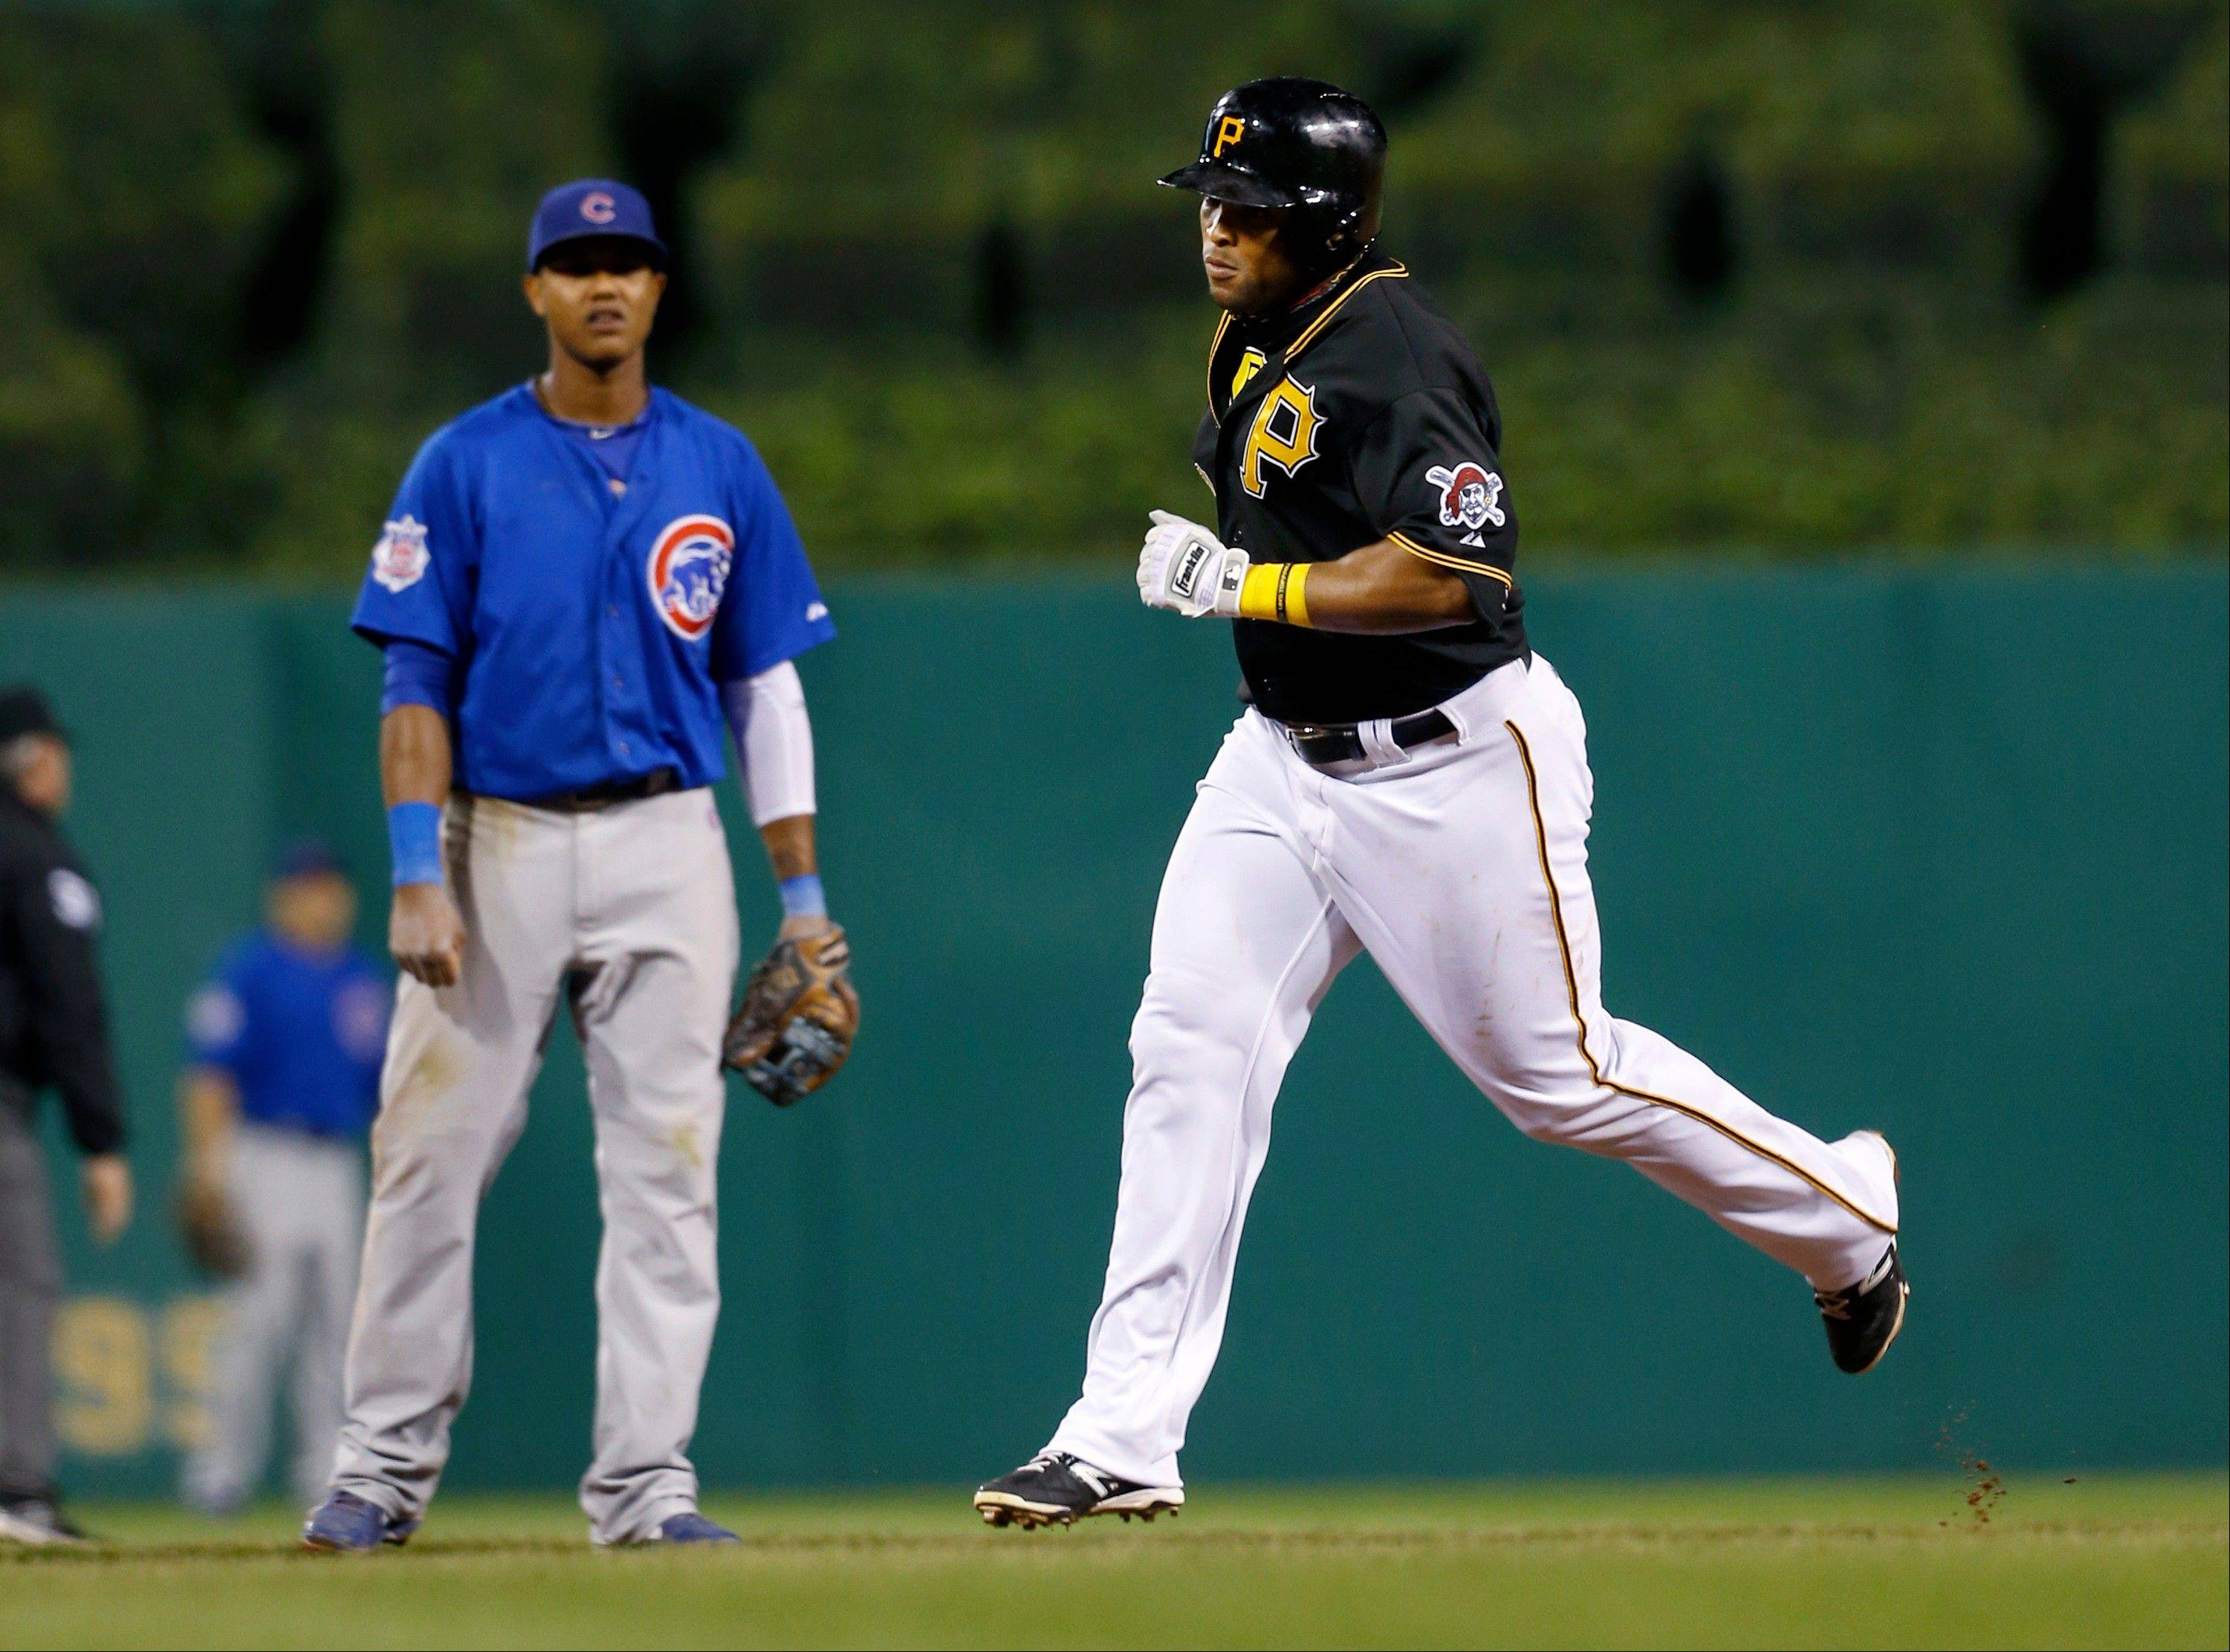 Pittsburgh Pirates� Marlon Byrd, right, rounds the bases in front of Chicago Cubs� Darwin Barney after hitting a home run in the seventh inning of the baseball game on Saturday, Sept. 14, 2013, in Pittsburgh. The Pirates won 2-1.